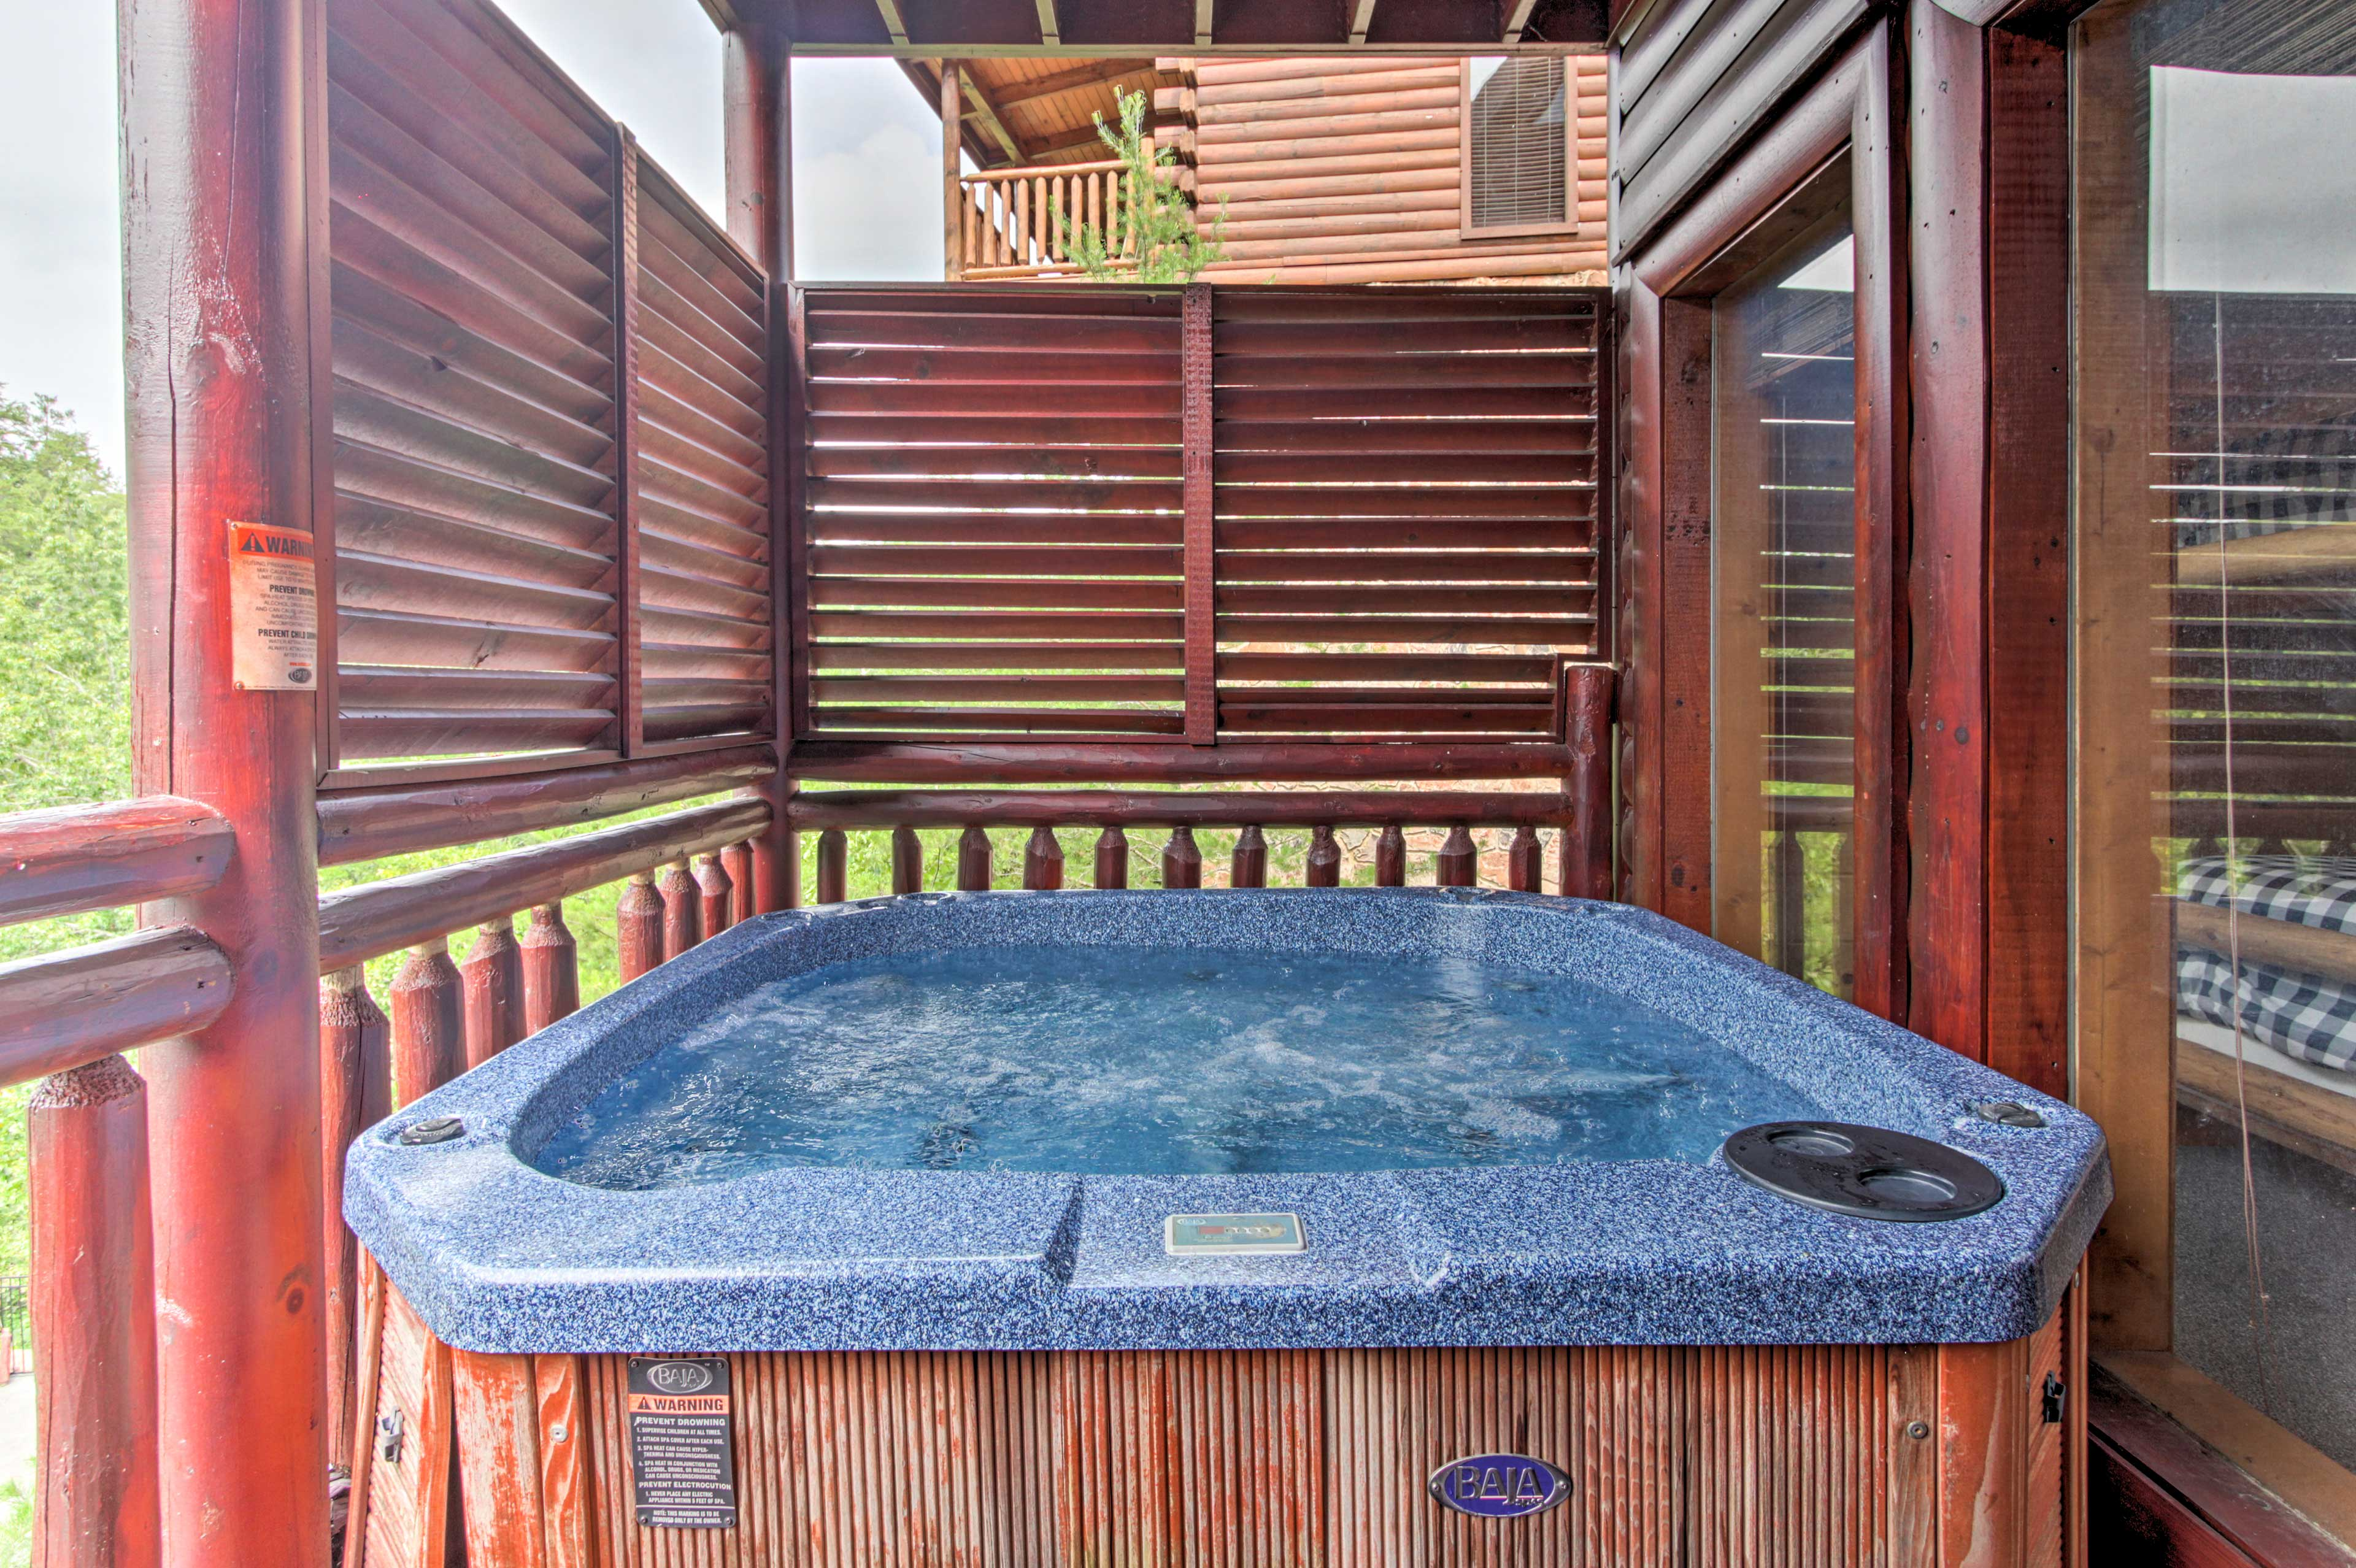 The private hot tub will make you feel relaxed and at peace.